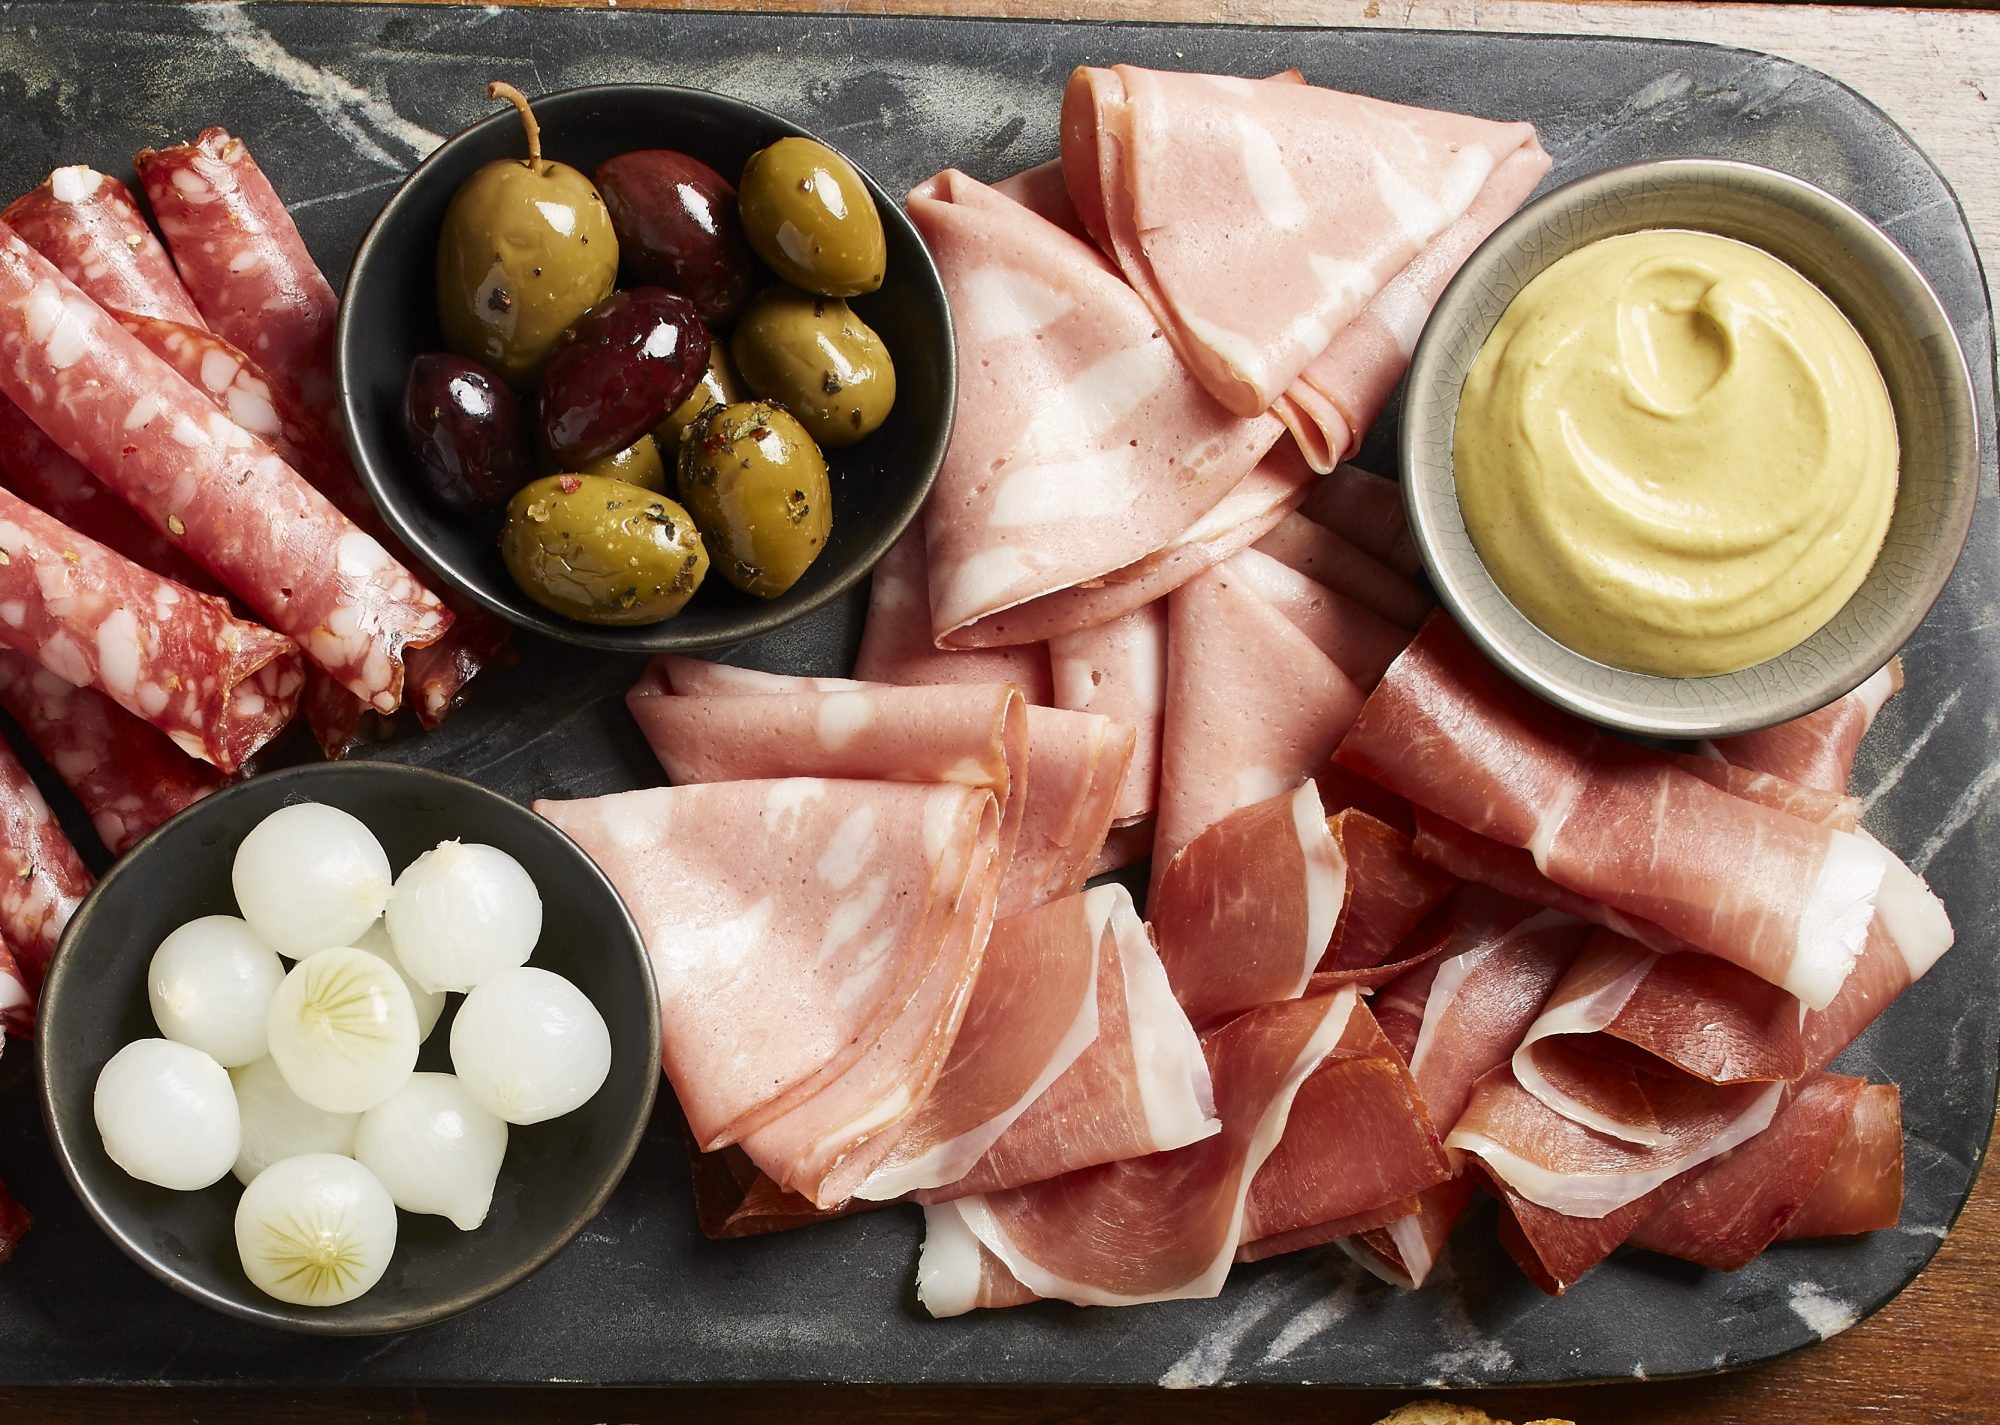 Charcuterie board with meats, cheese, olives, and mustard